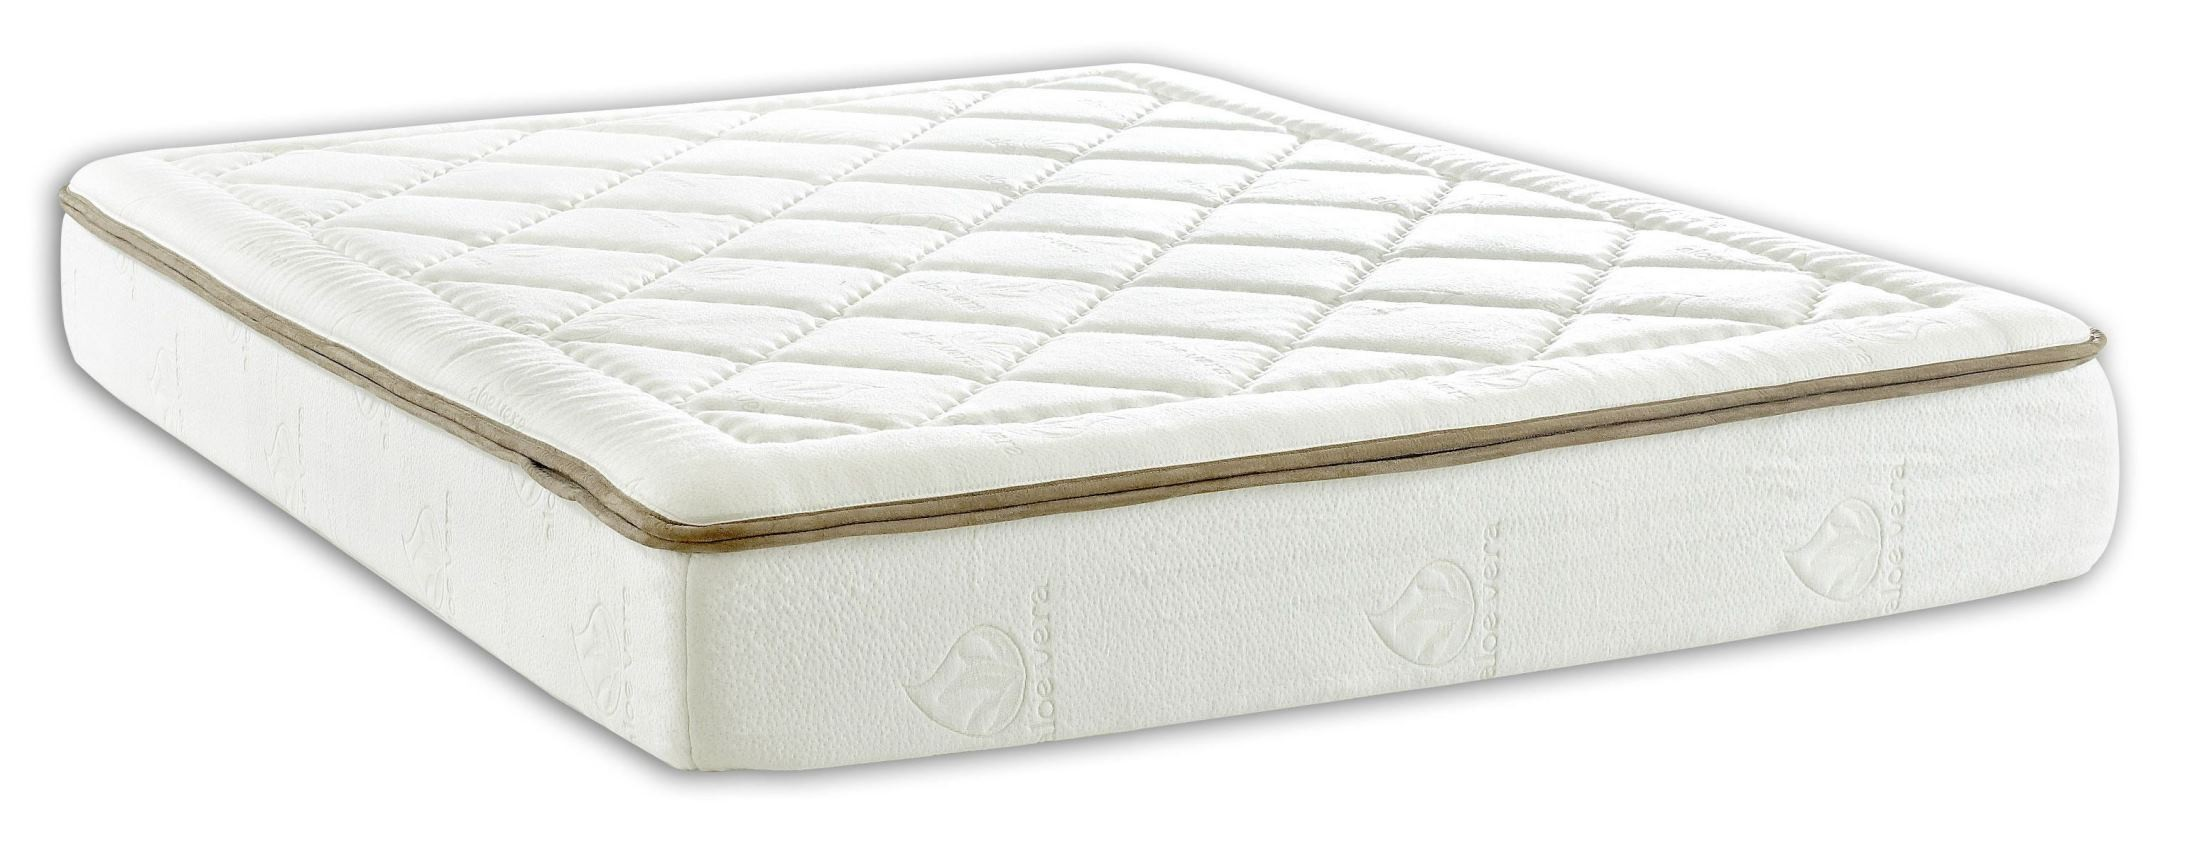 Dream weaver 10 memory foam twin mattress from klaussner drmwvrttmat coleman furniture Double mattress memory foam